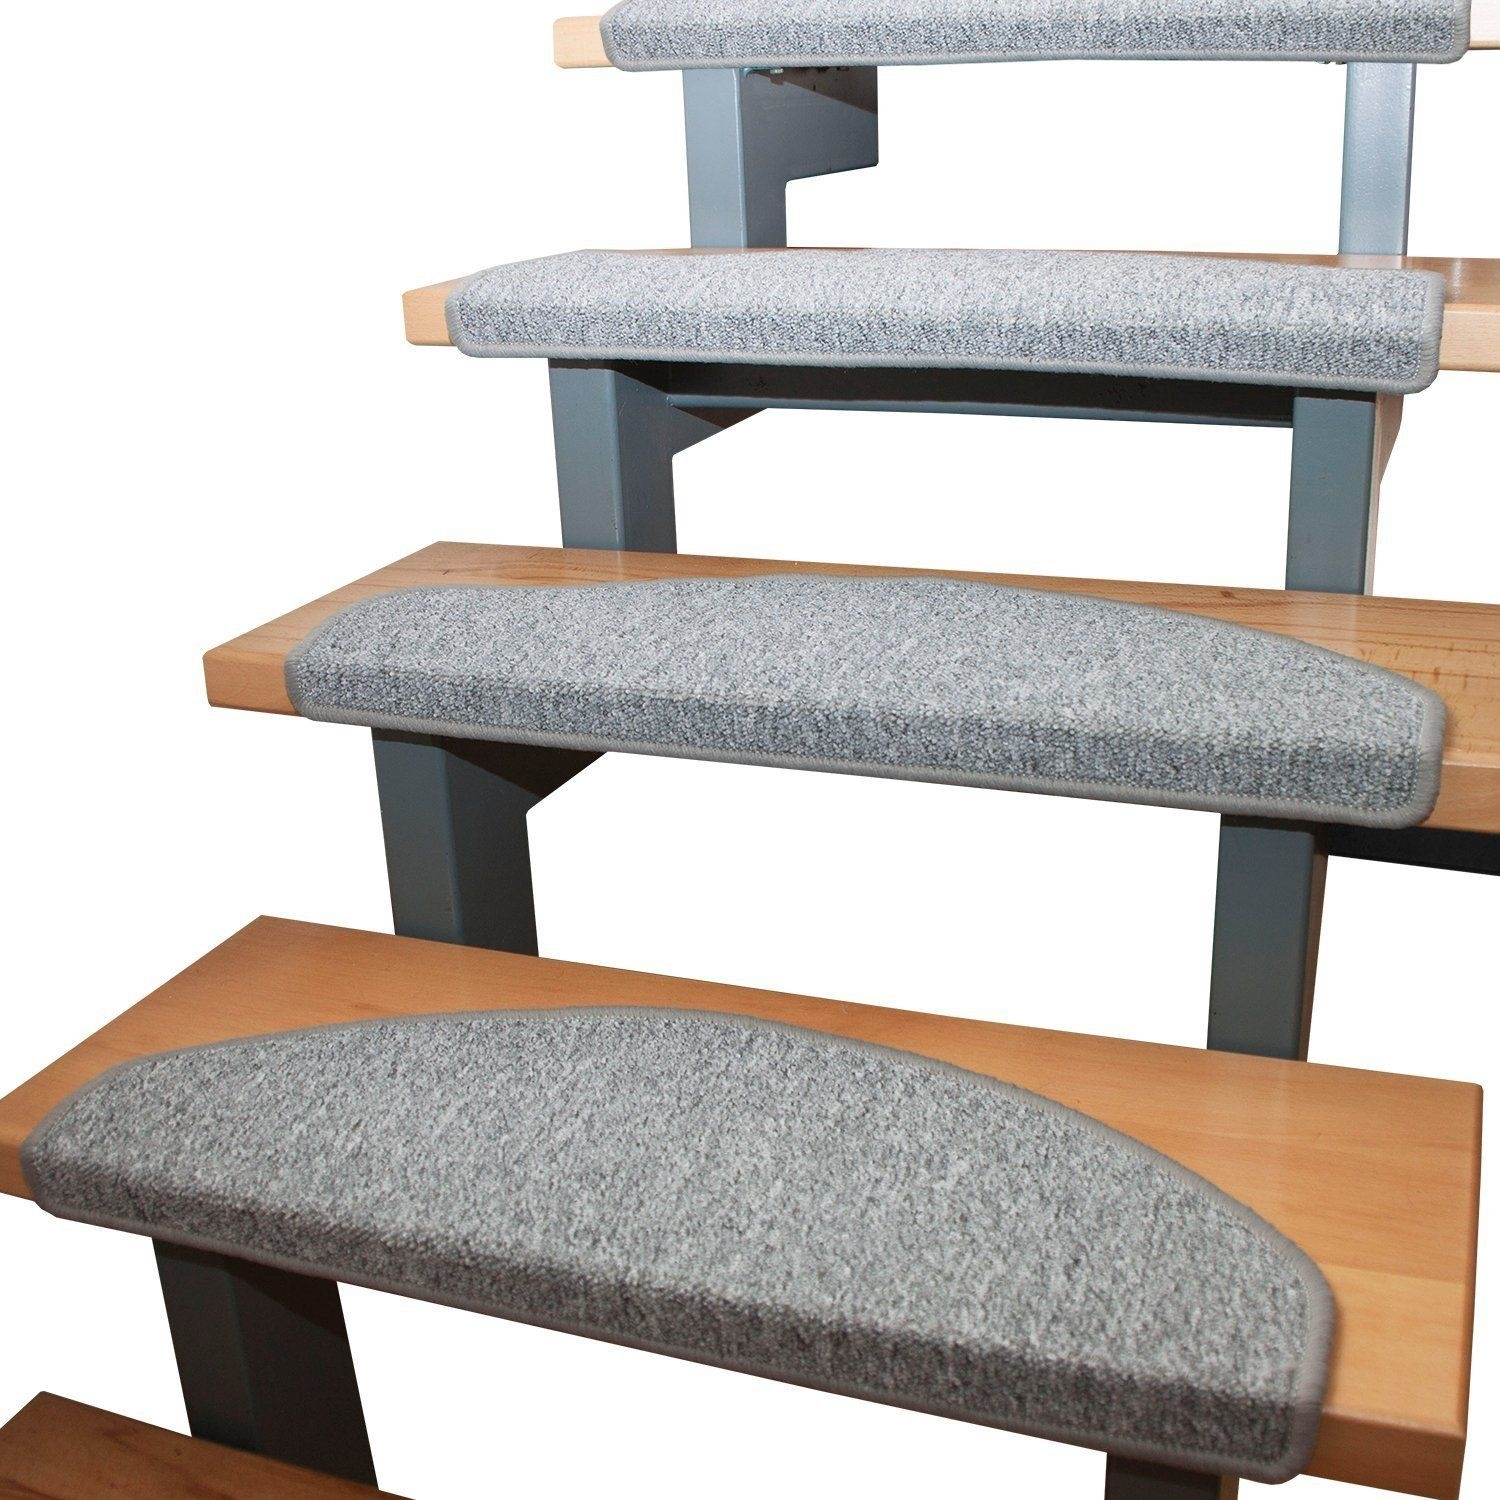 15 Ideas Of Removable Carpet Stair Treads Stair Tread   Removable Carpet For Stairs